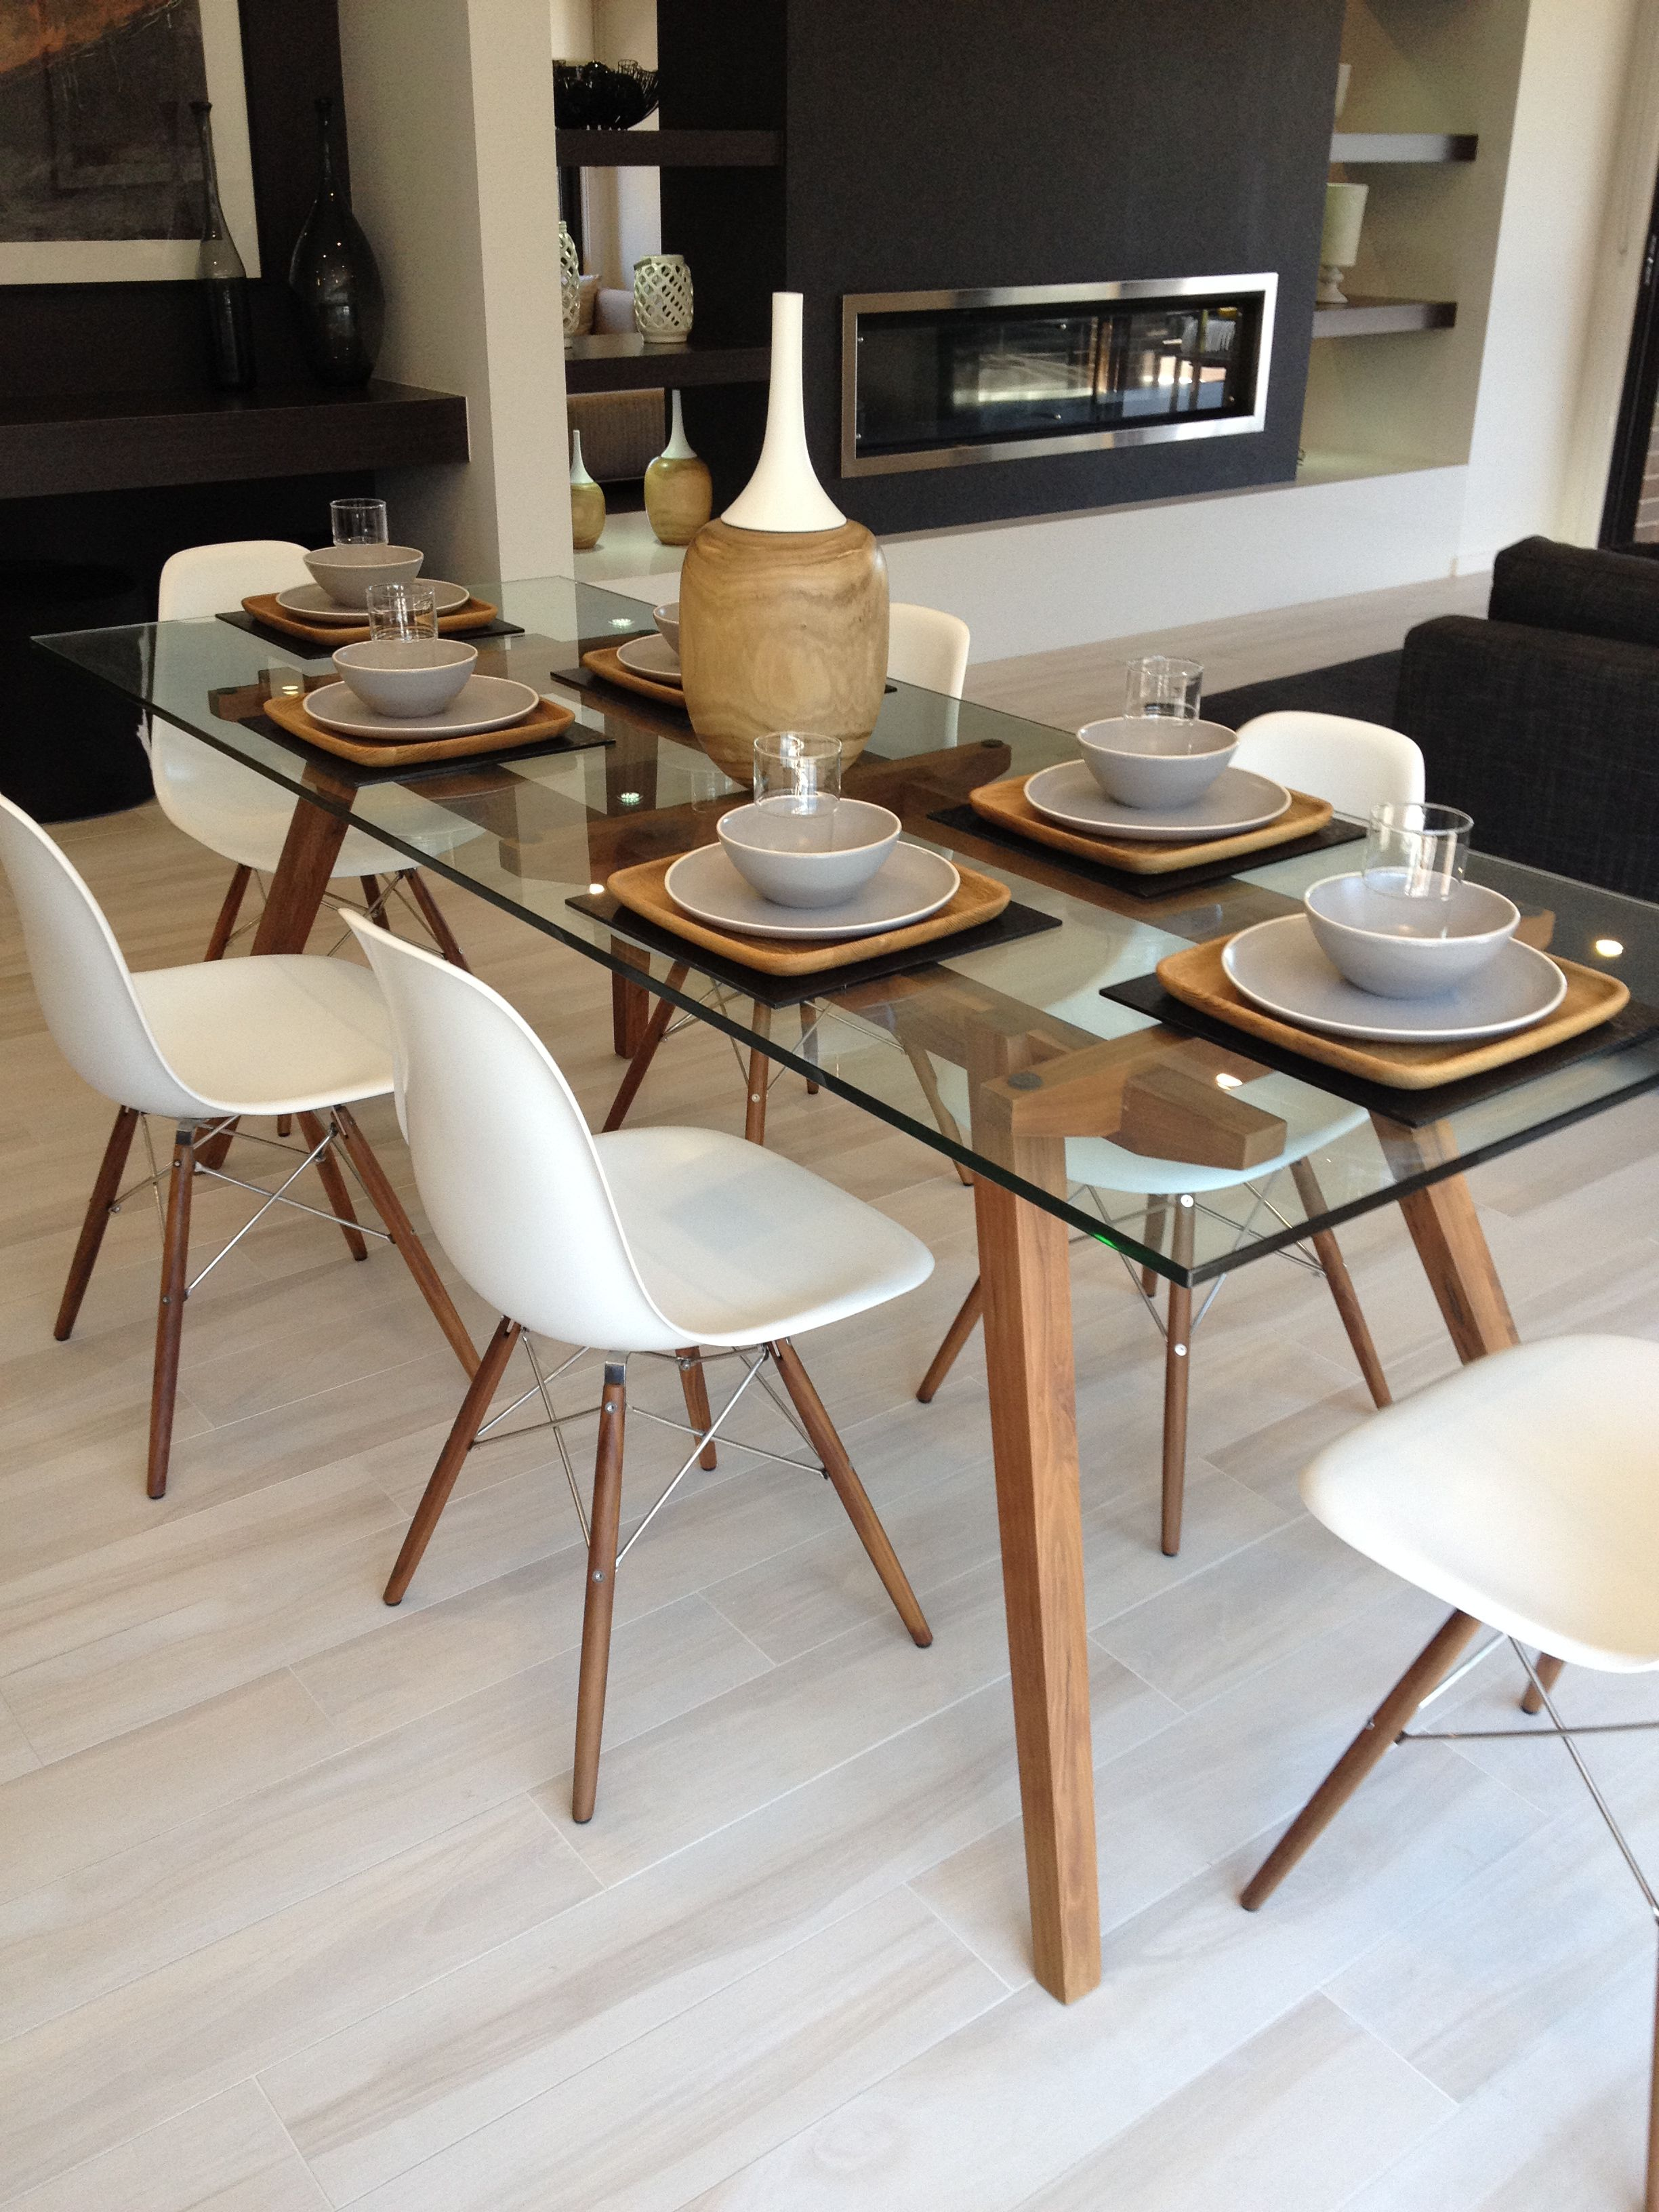 Sticotti Glass Dining Table And Eames Dining Chairs In Walnut - Rectangular glass dining table with wood base